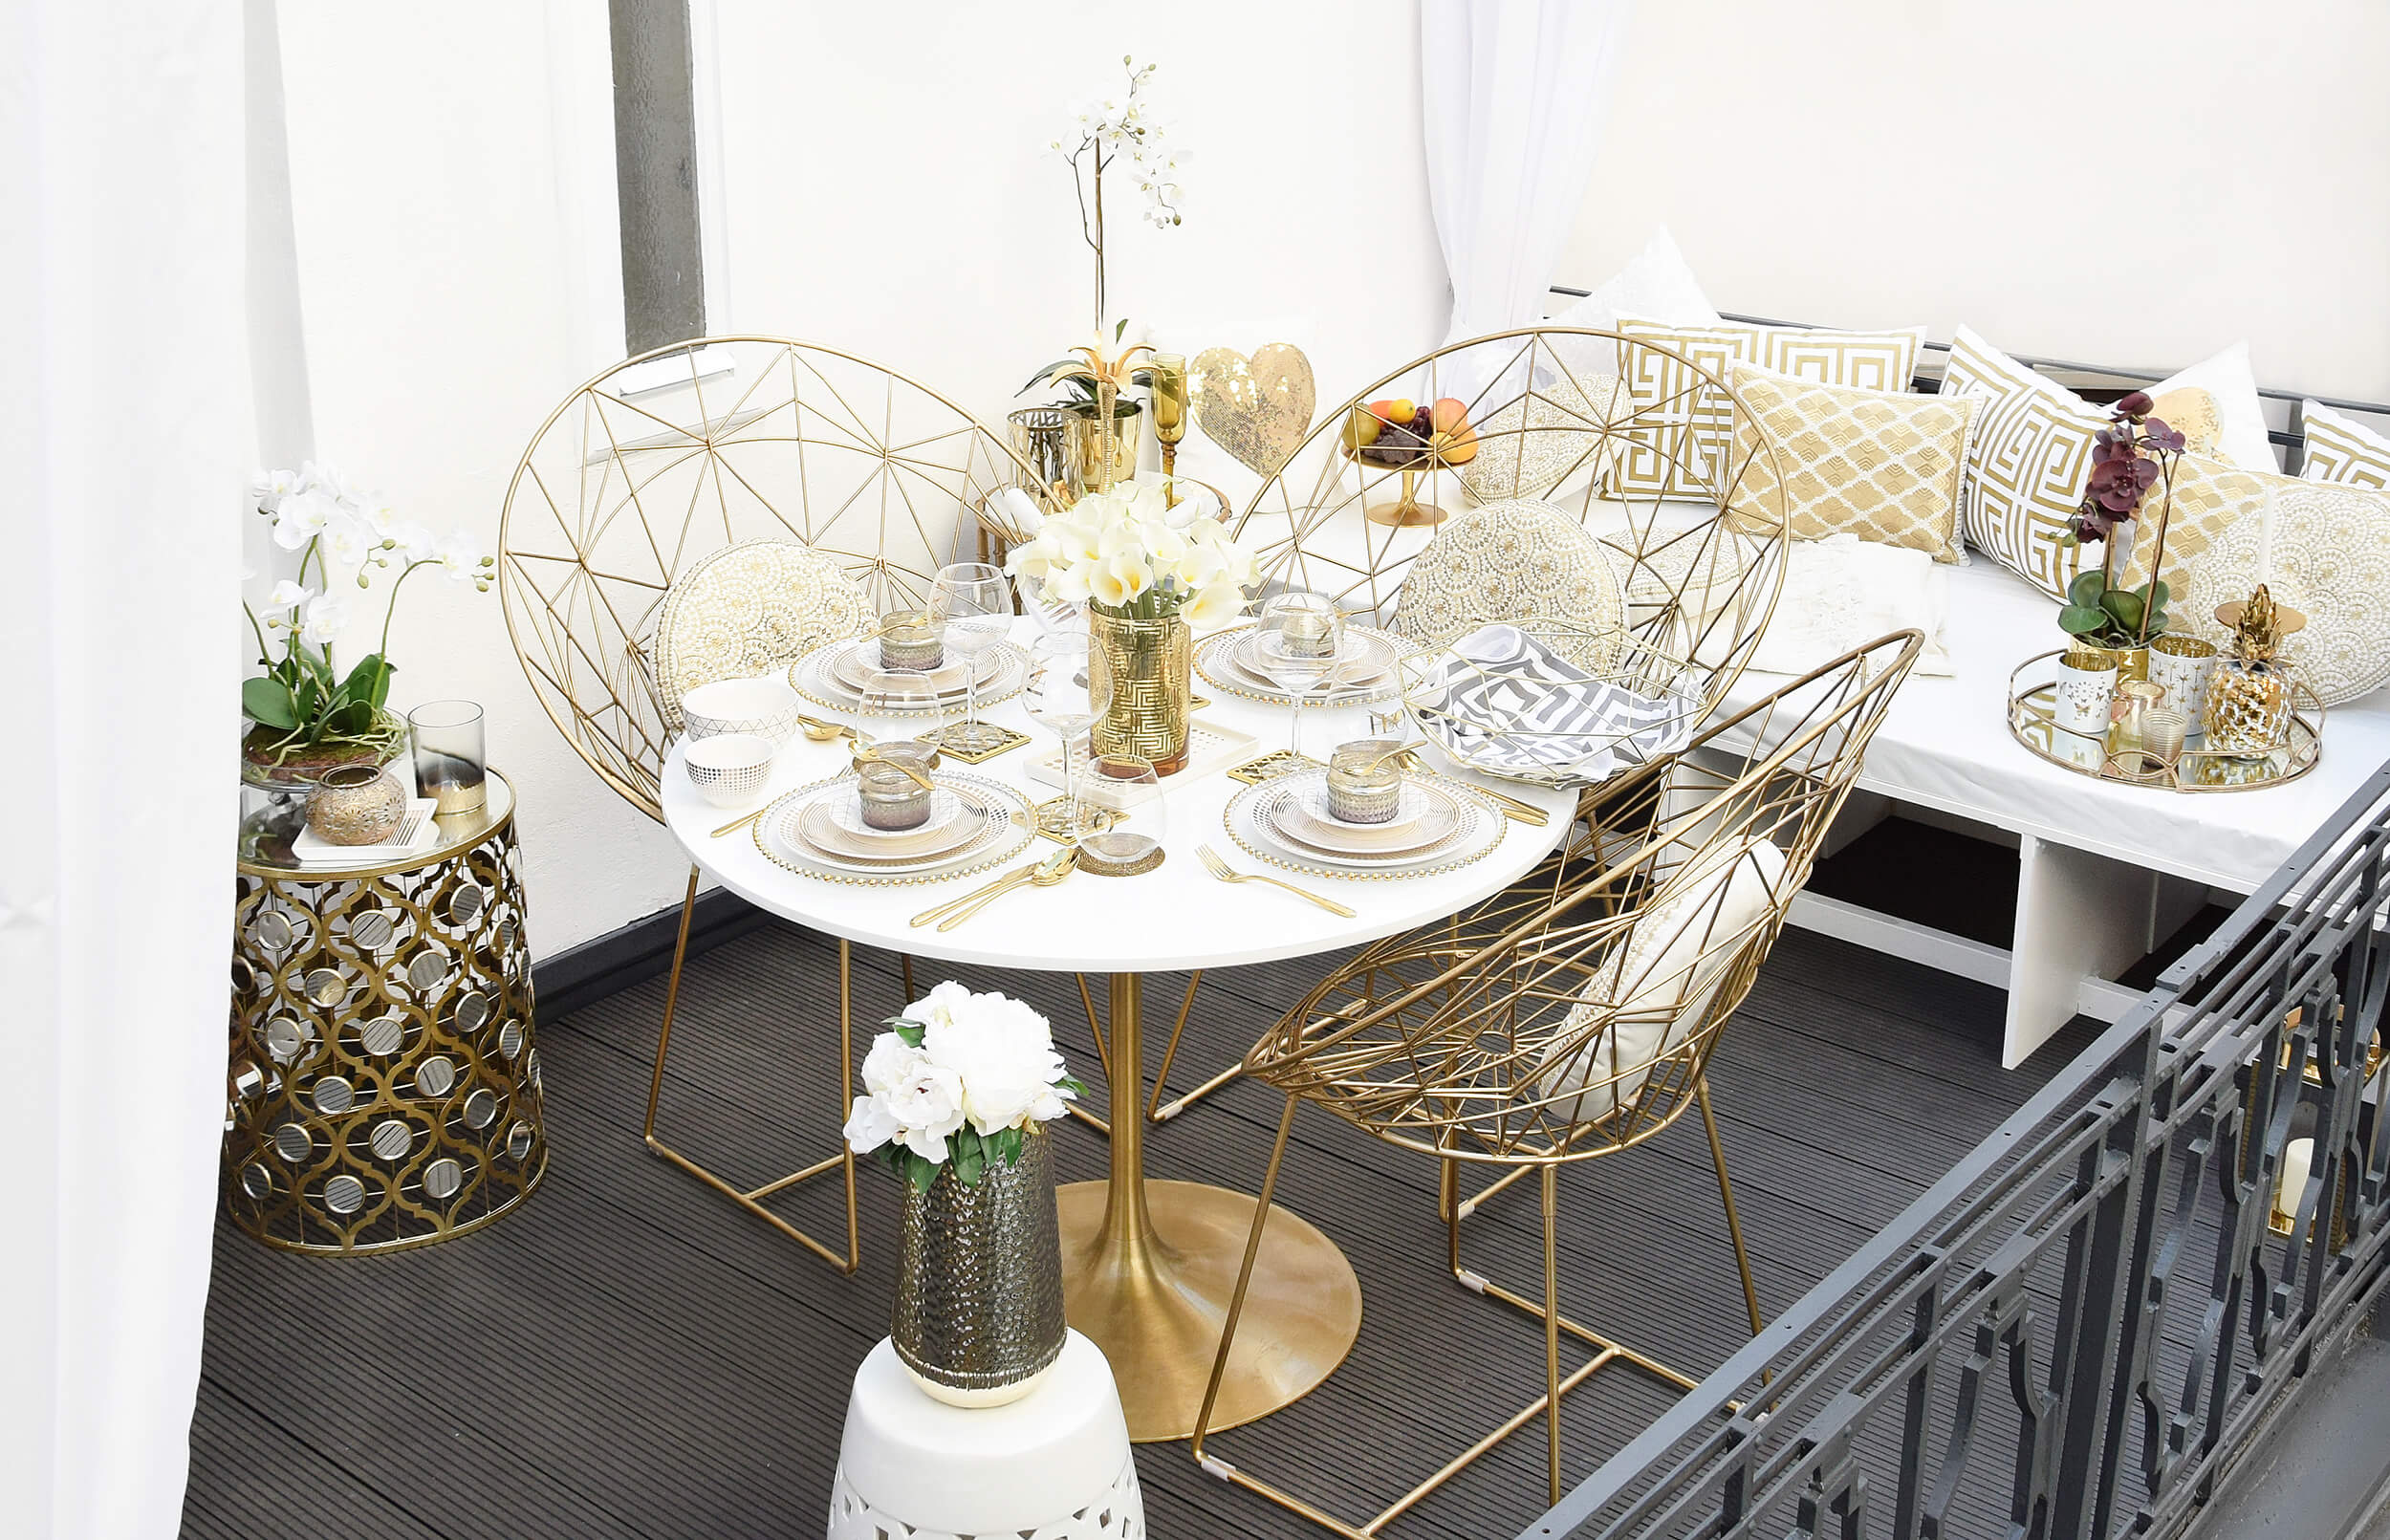 Glamorous Gold Balcony - Terrassenlounge in Weiß & Gold